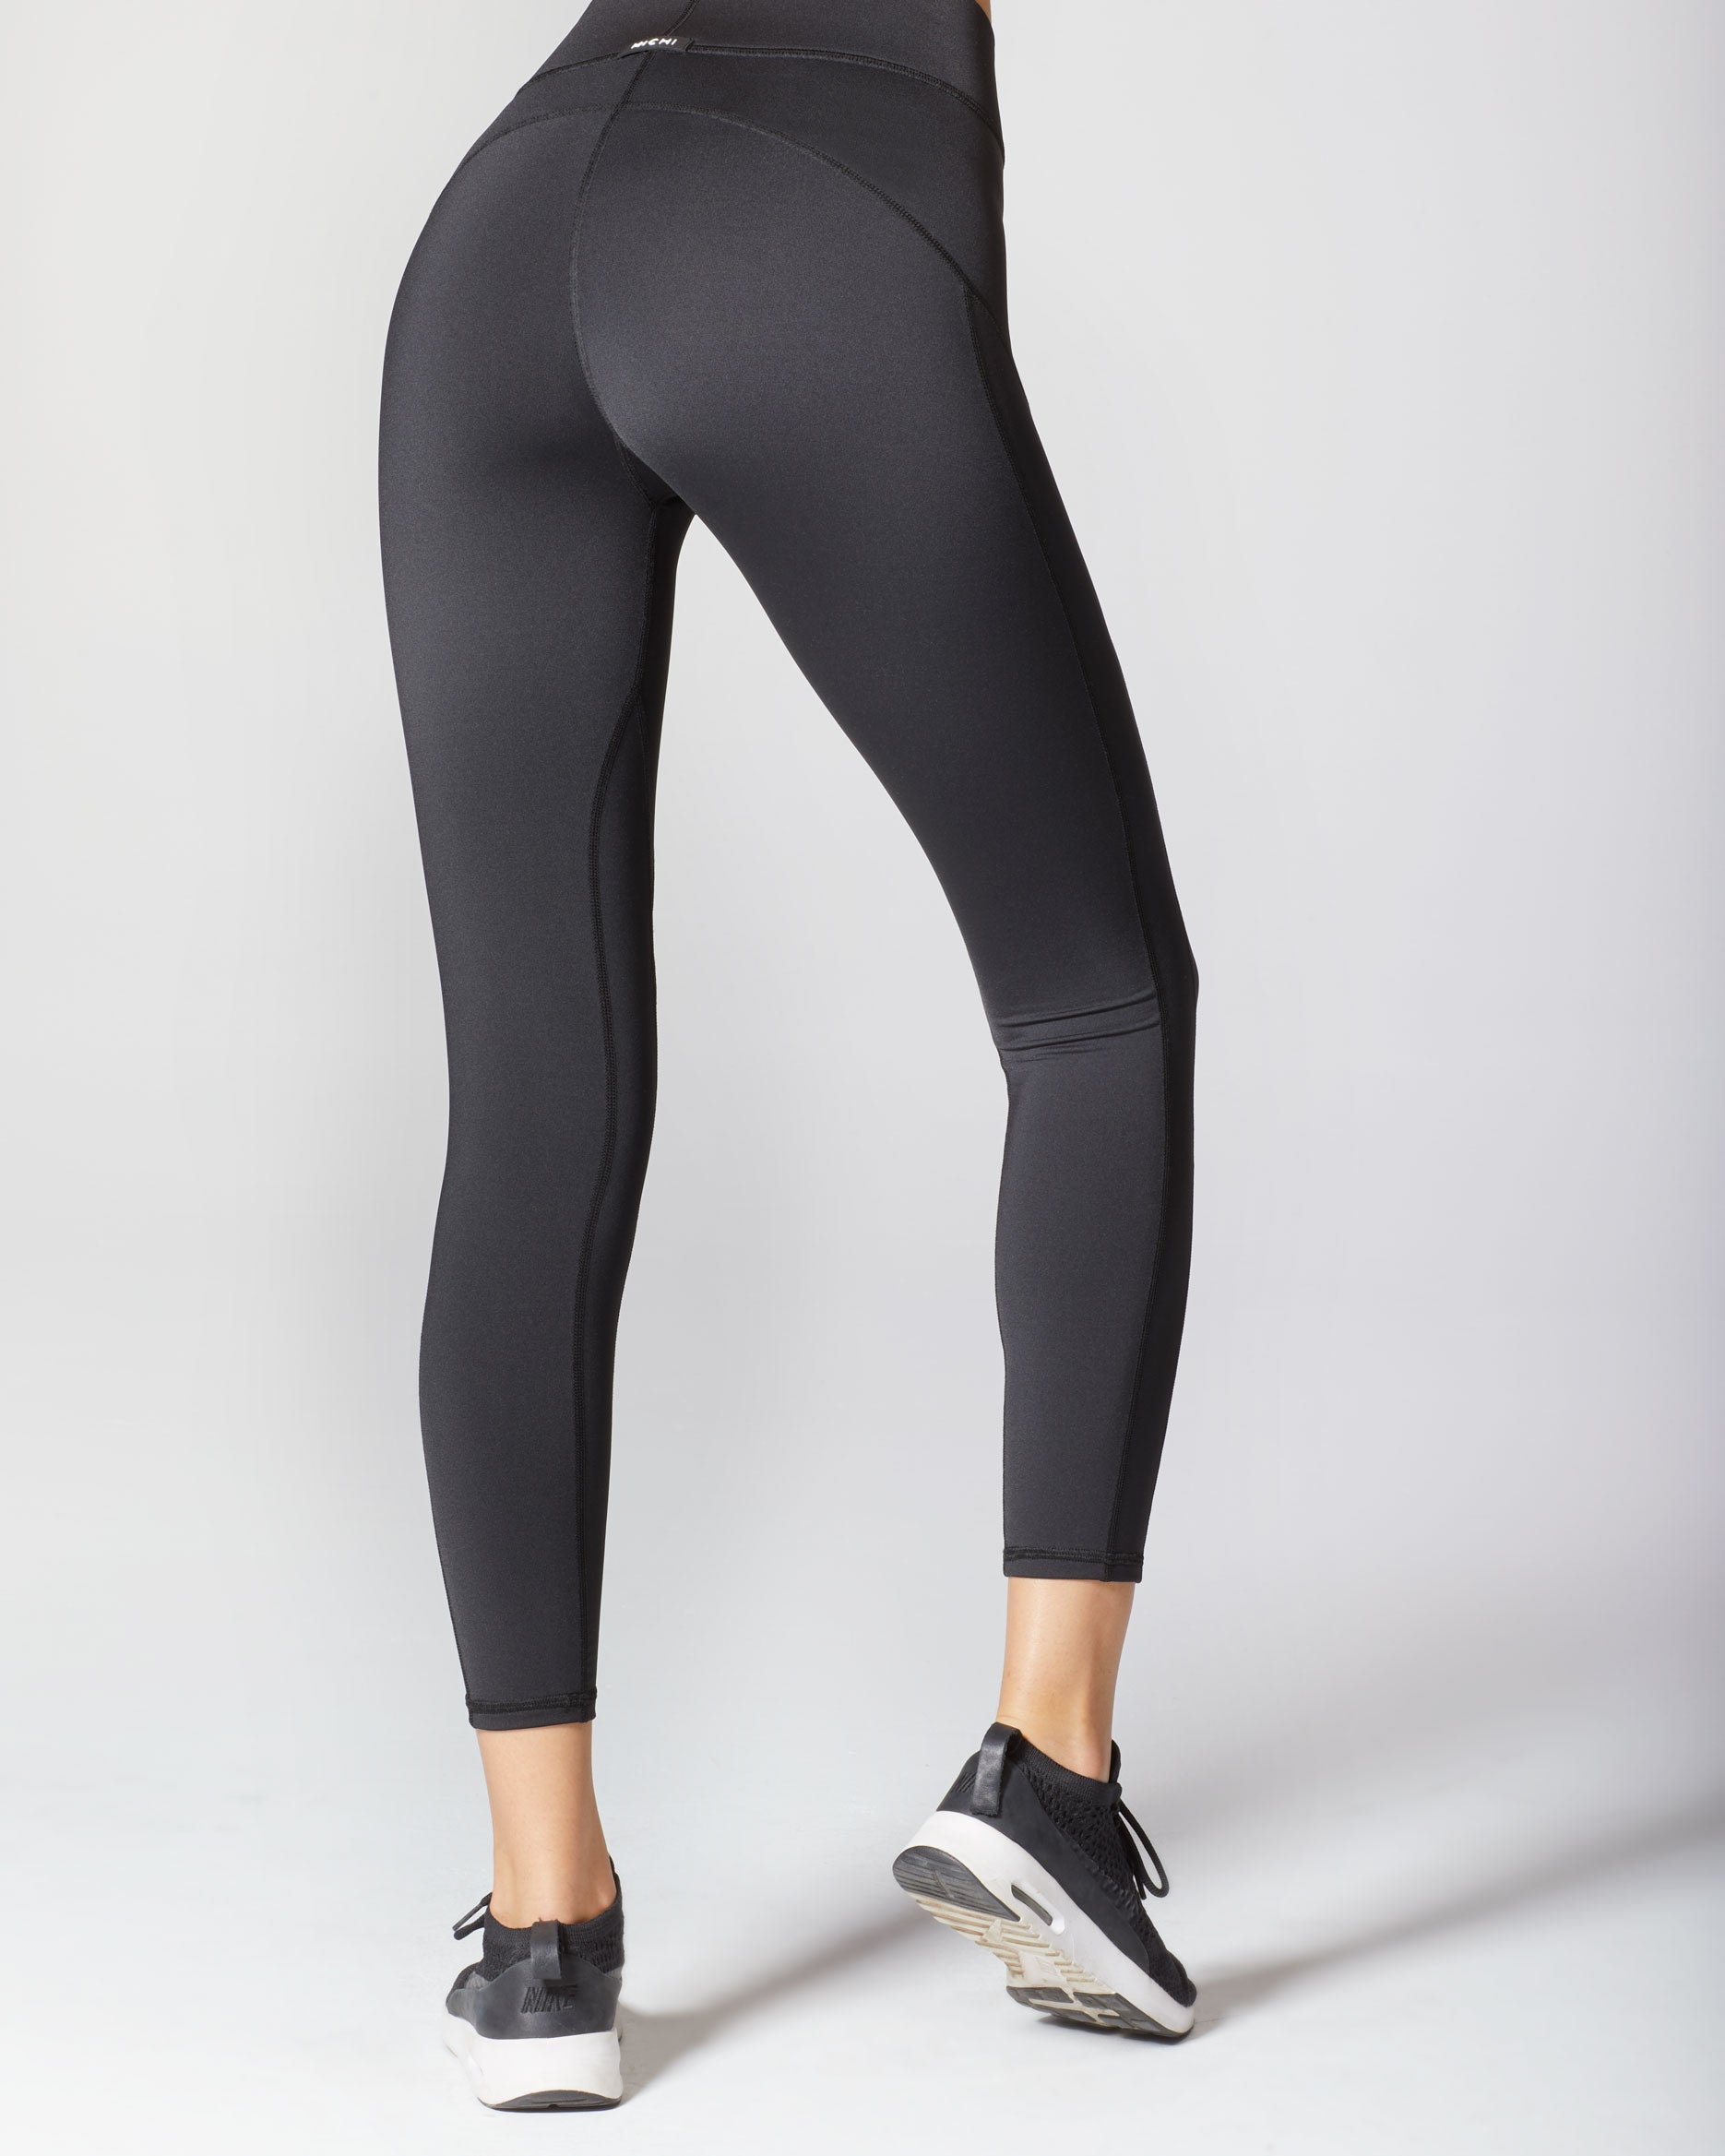 Mist Legging - Black